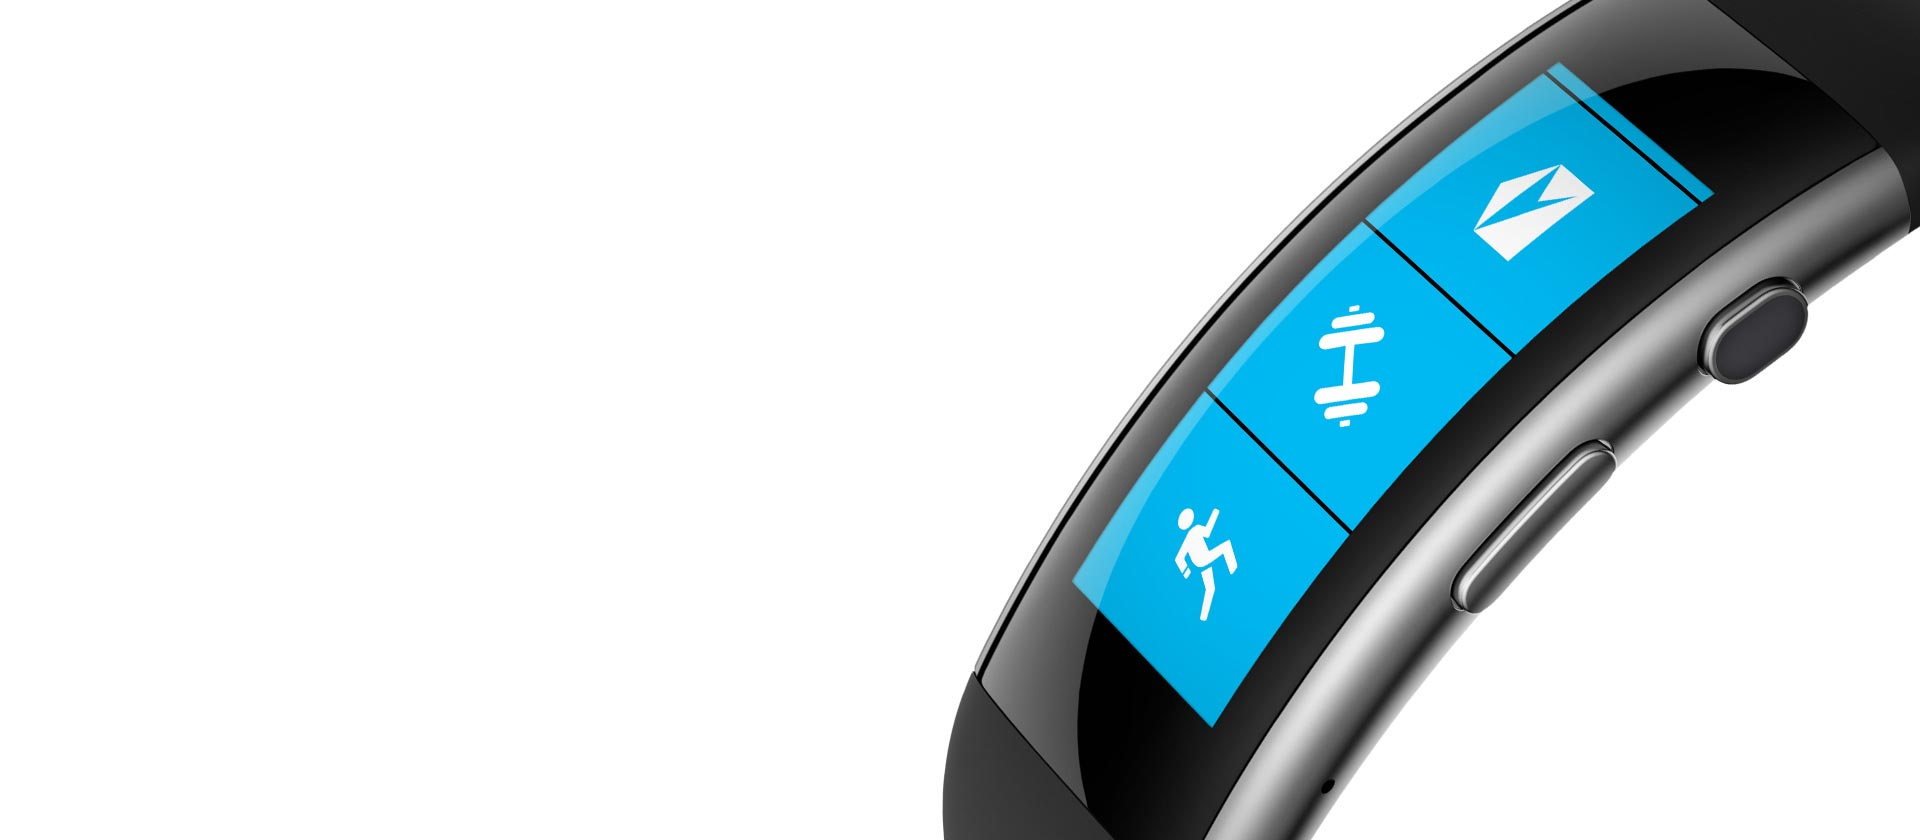 Microsoft Band Features